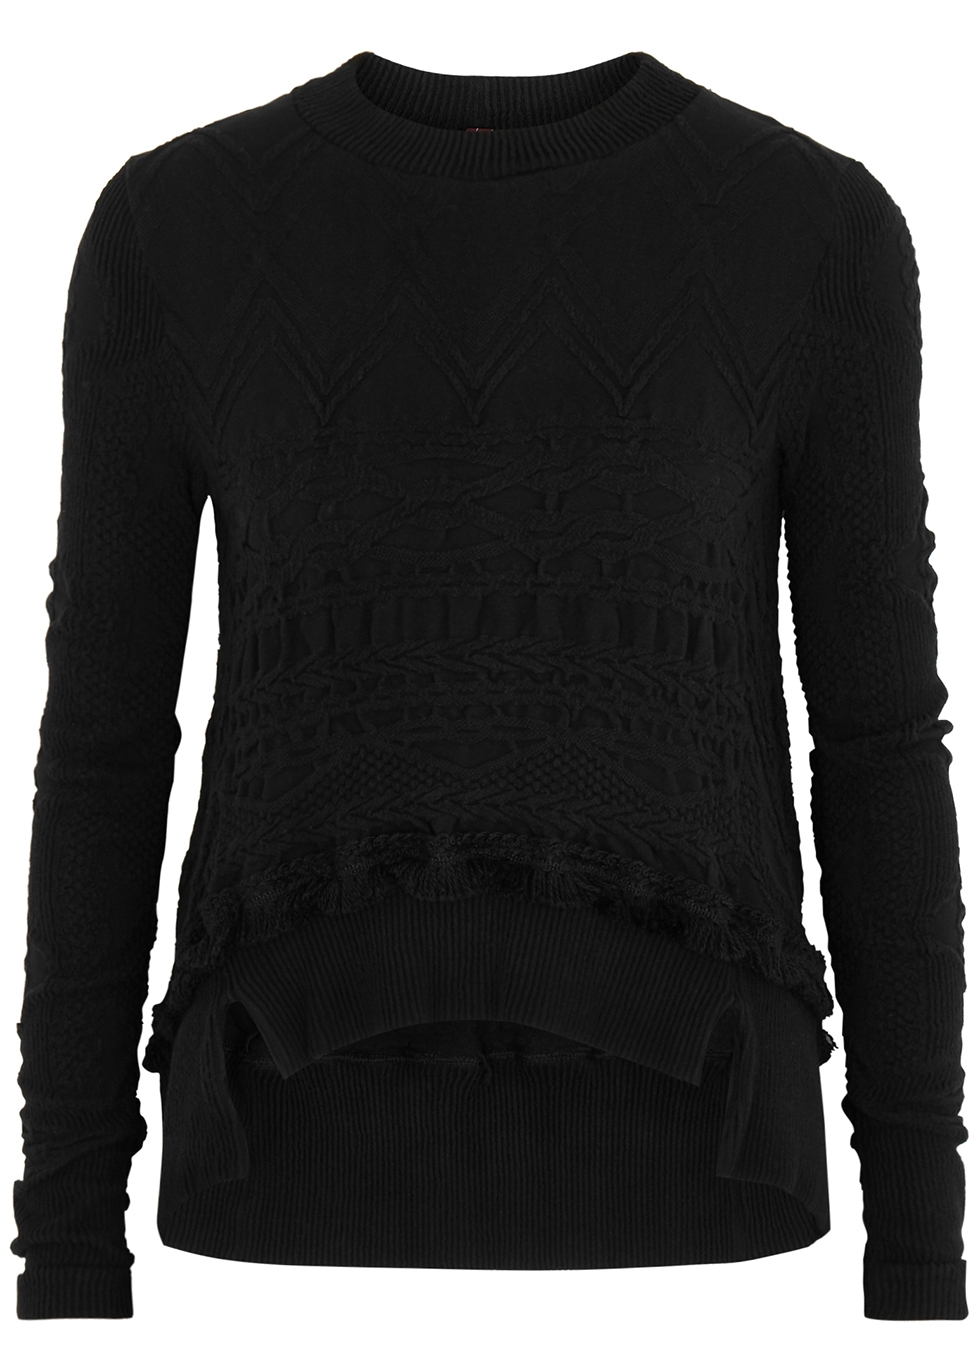 Otherwise black textured-knit jumper